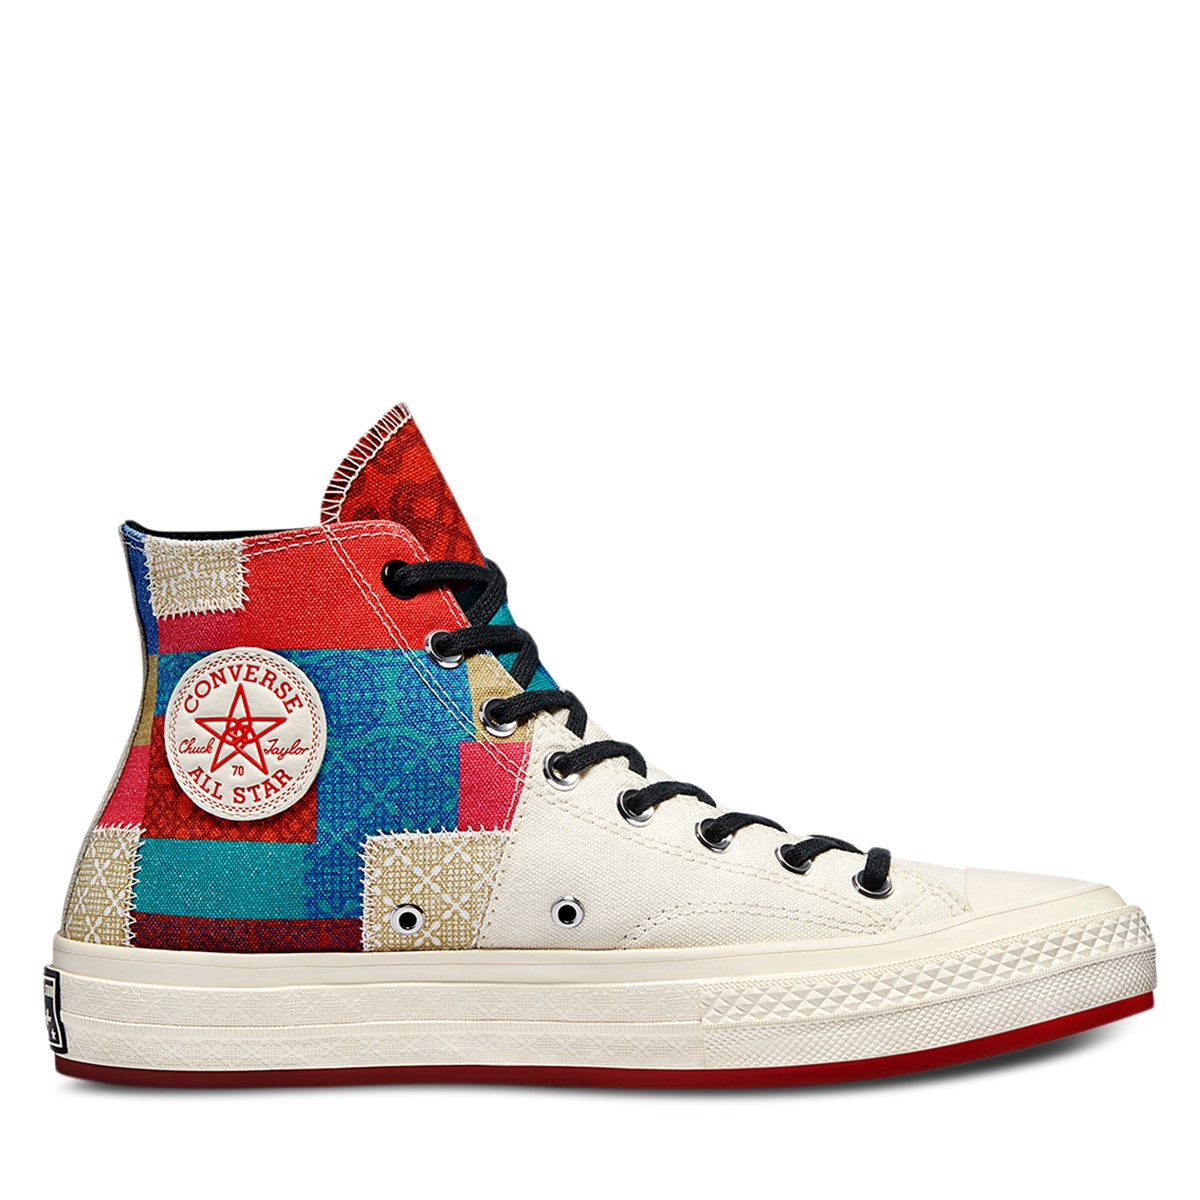 Chinese New Year Patchwork Chuck 70 Hi Sneakers